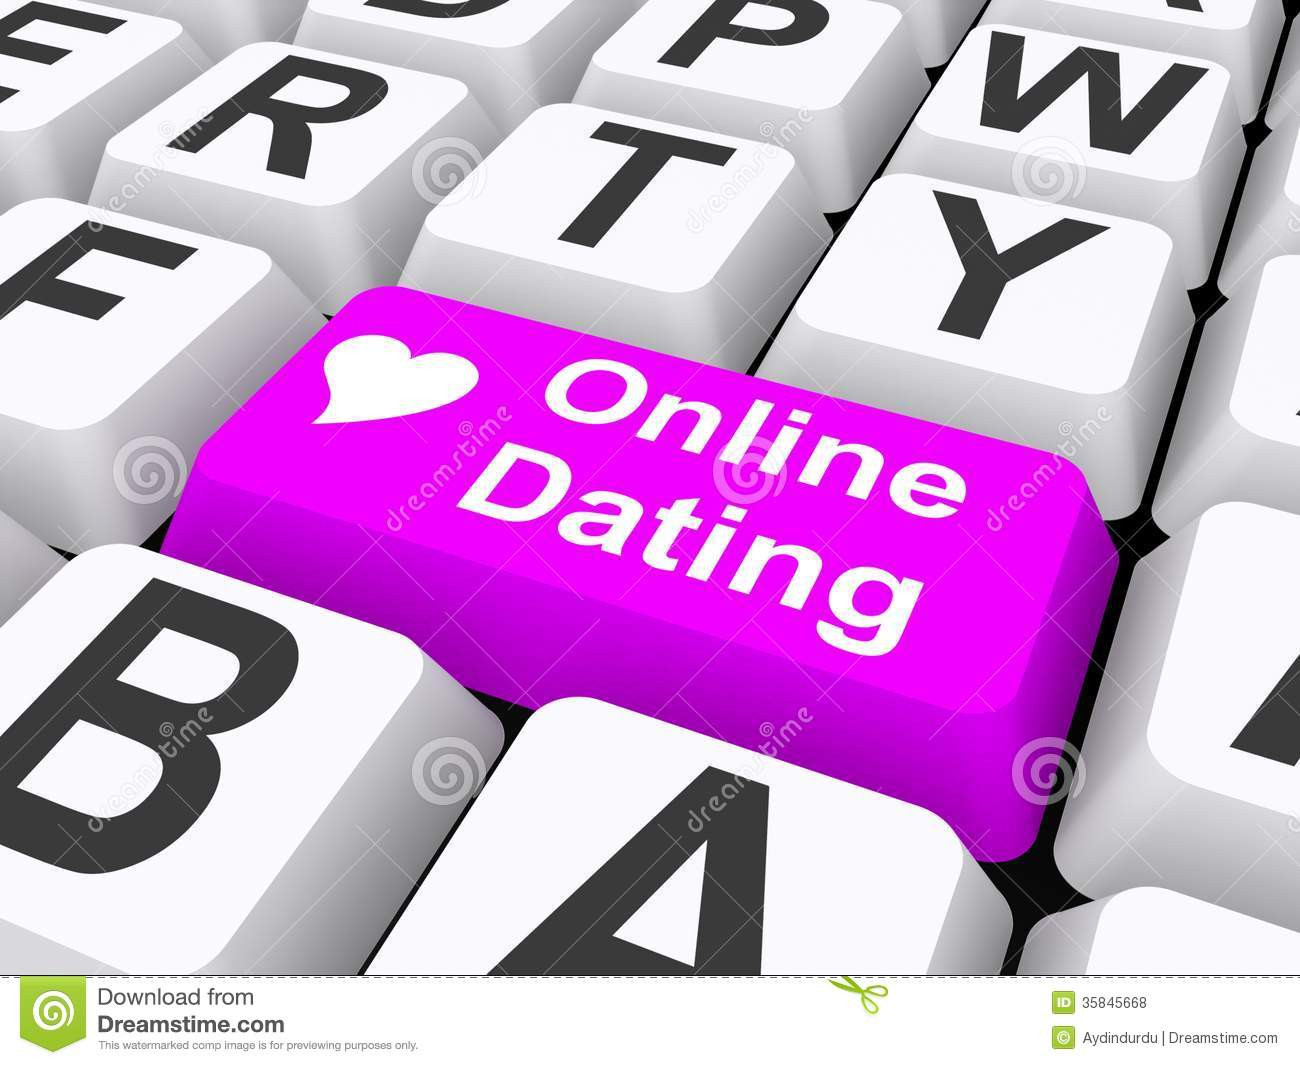 free online personals in big arm Free online dating - singles welcome to the fastest growing free dating site okcupid is free to join, free to search, and free to message.